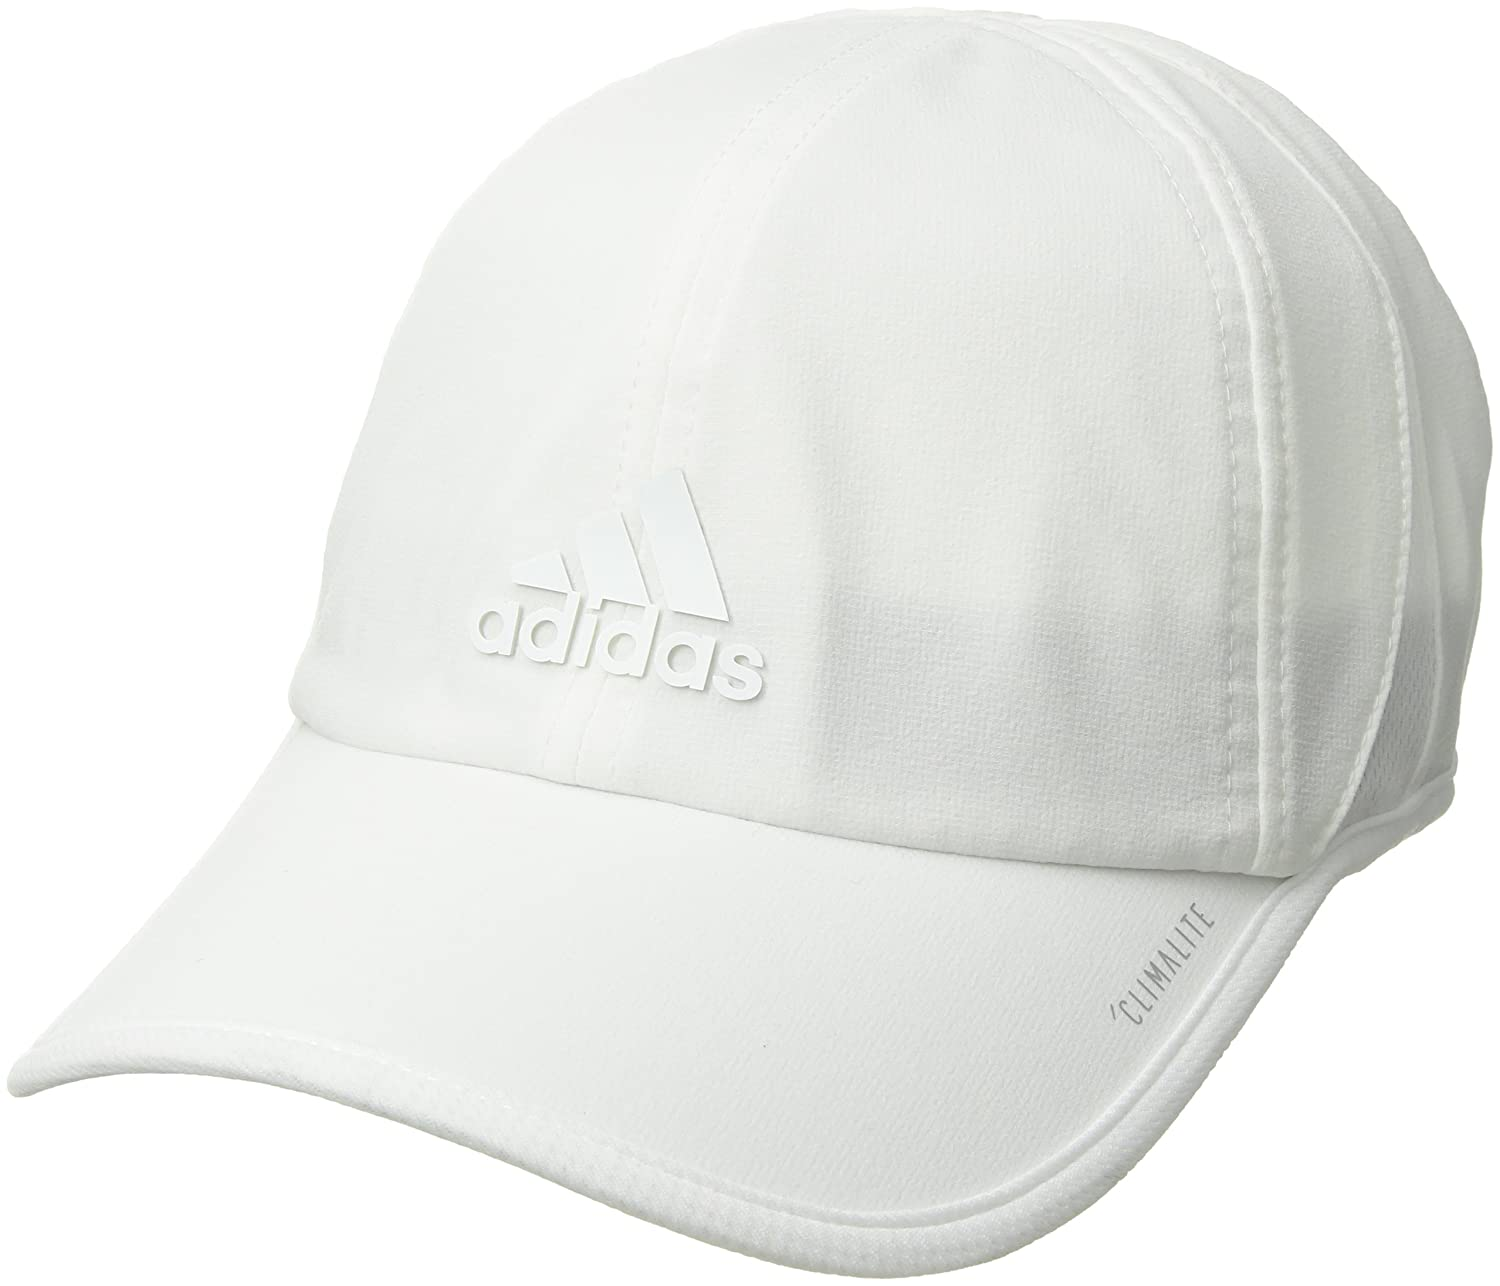 adidas Men's Superlite Relaxed Adjustable Performance Cap Agron Hats & Accessories 976609